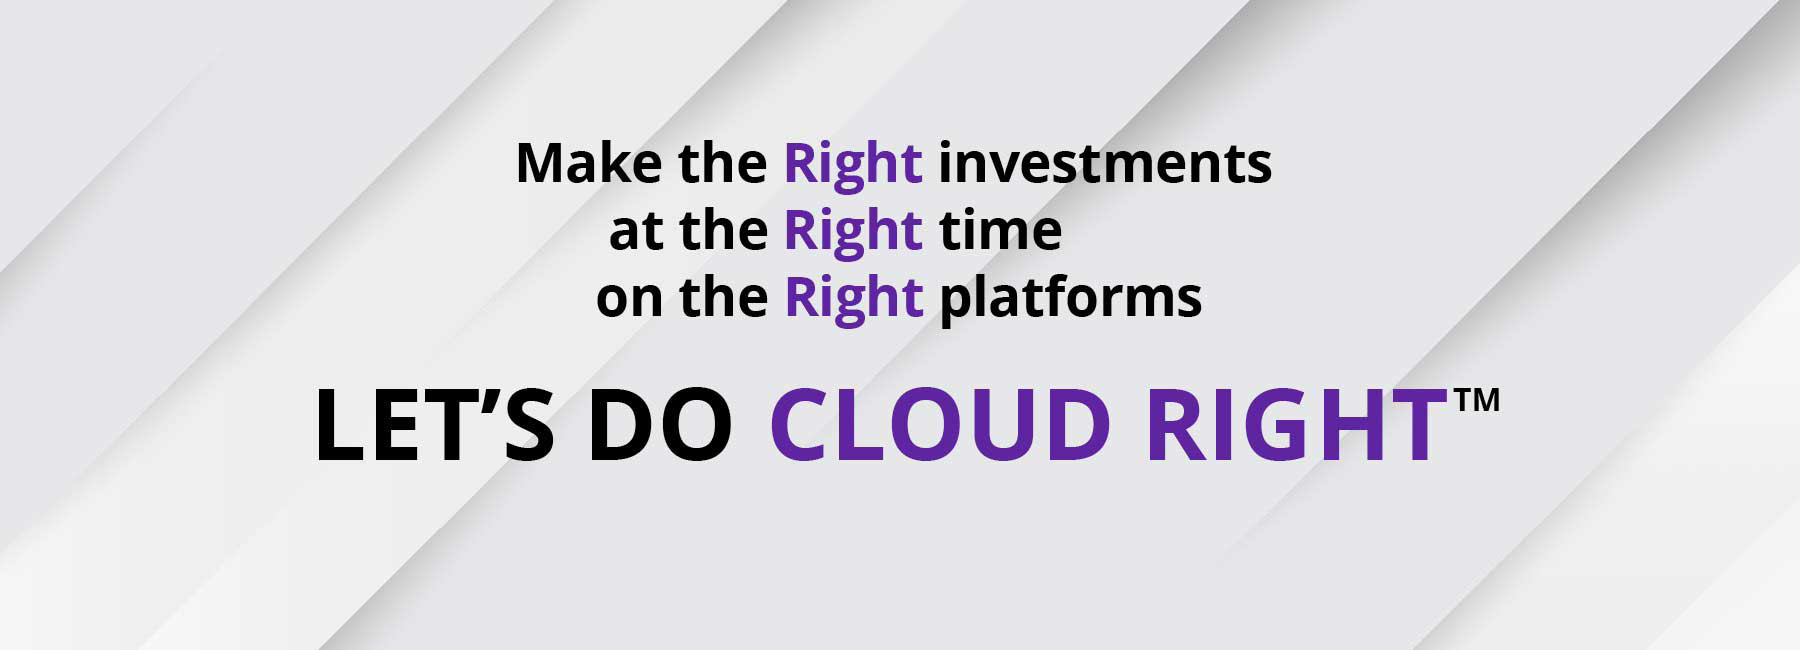 Let's do Cloud Right